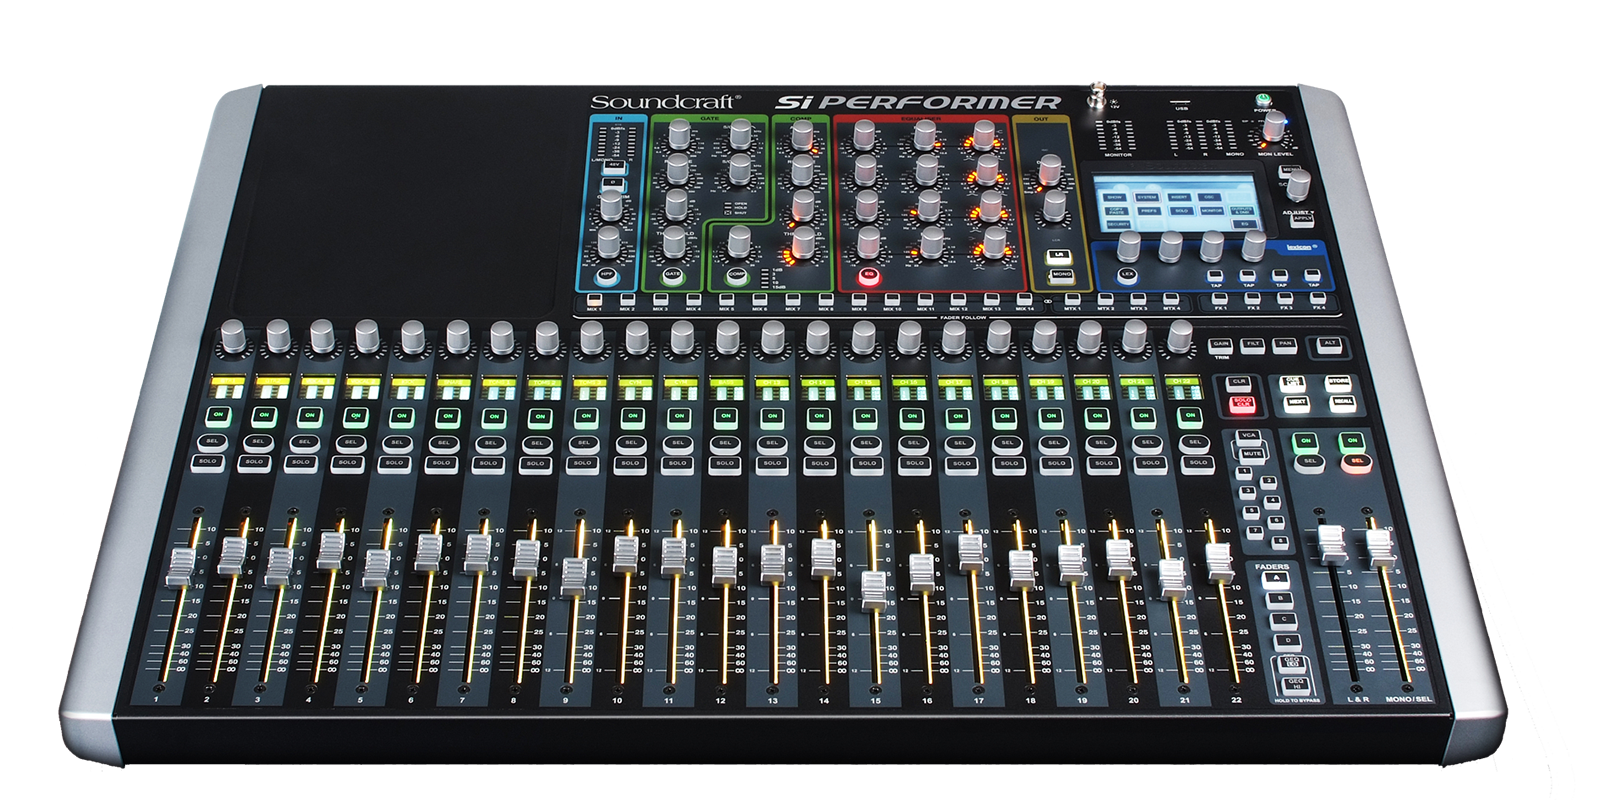 si performer 2 soundcraft professional audio mixers. Black Bedroom Furniture Sets. Home Design Ideas